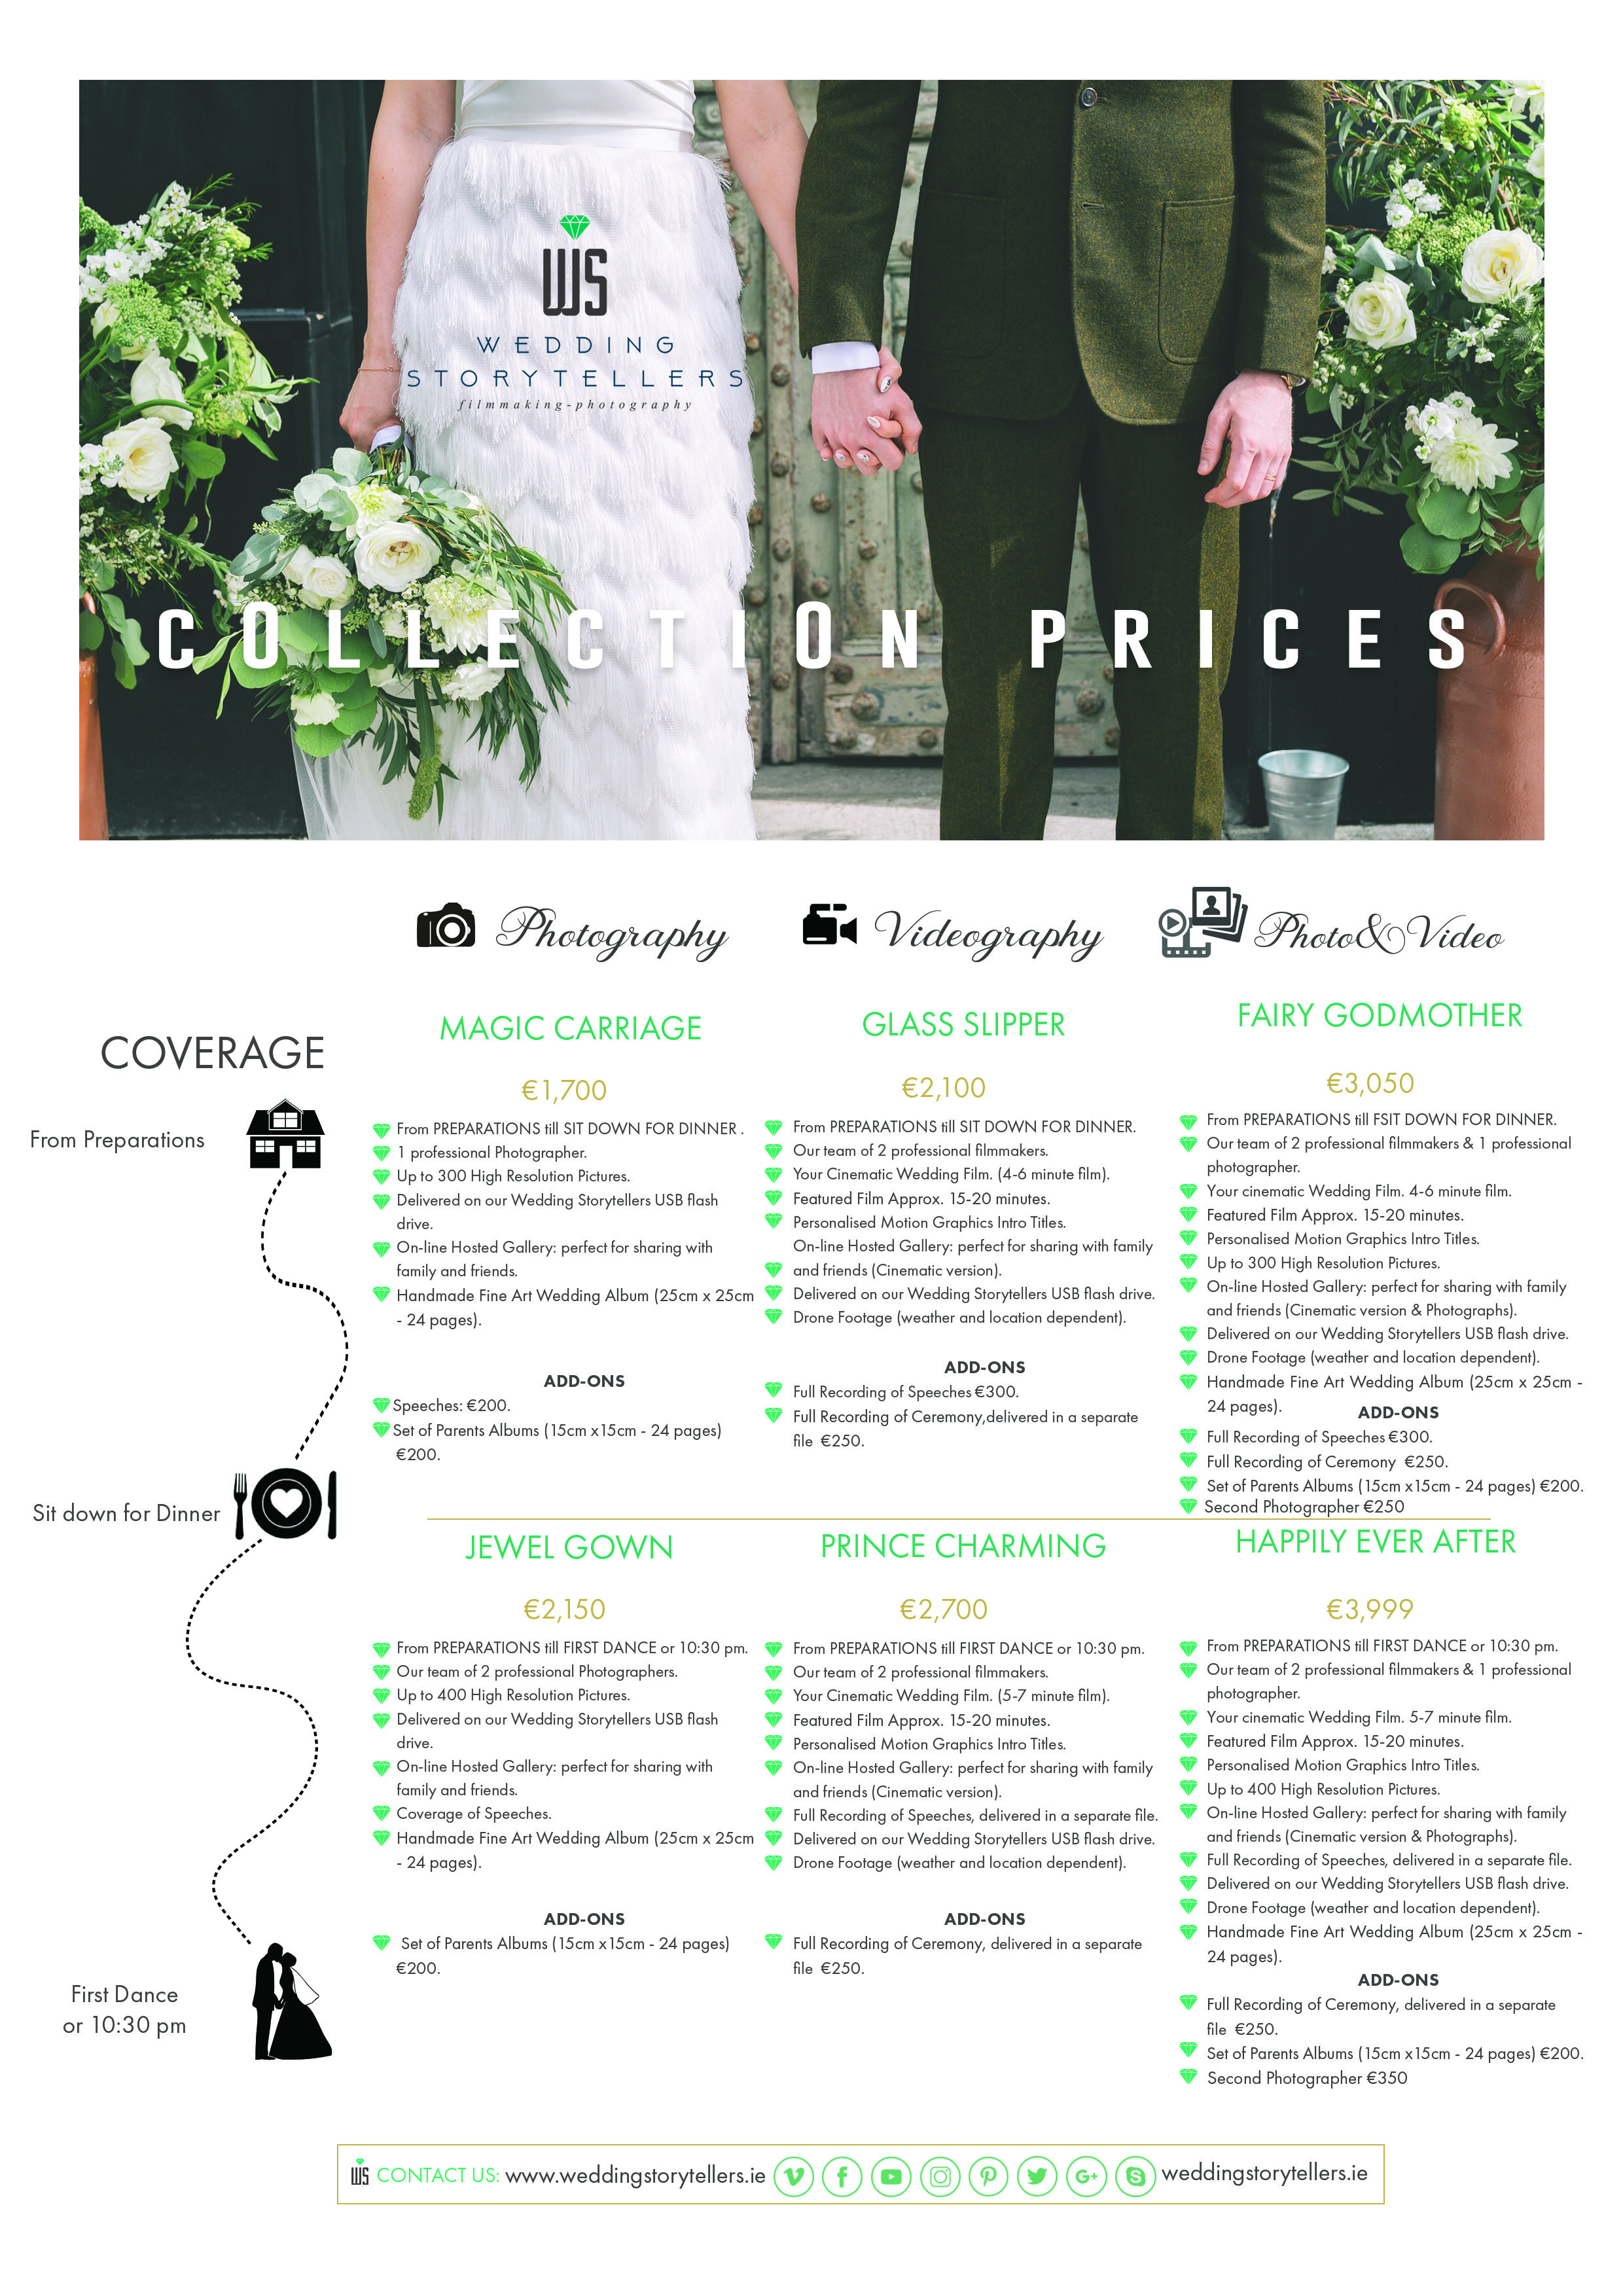 WST collection prices 2019 - 2020.jpg